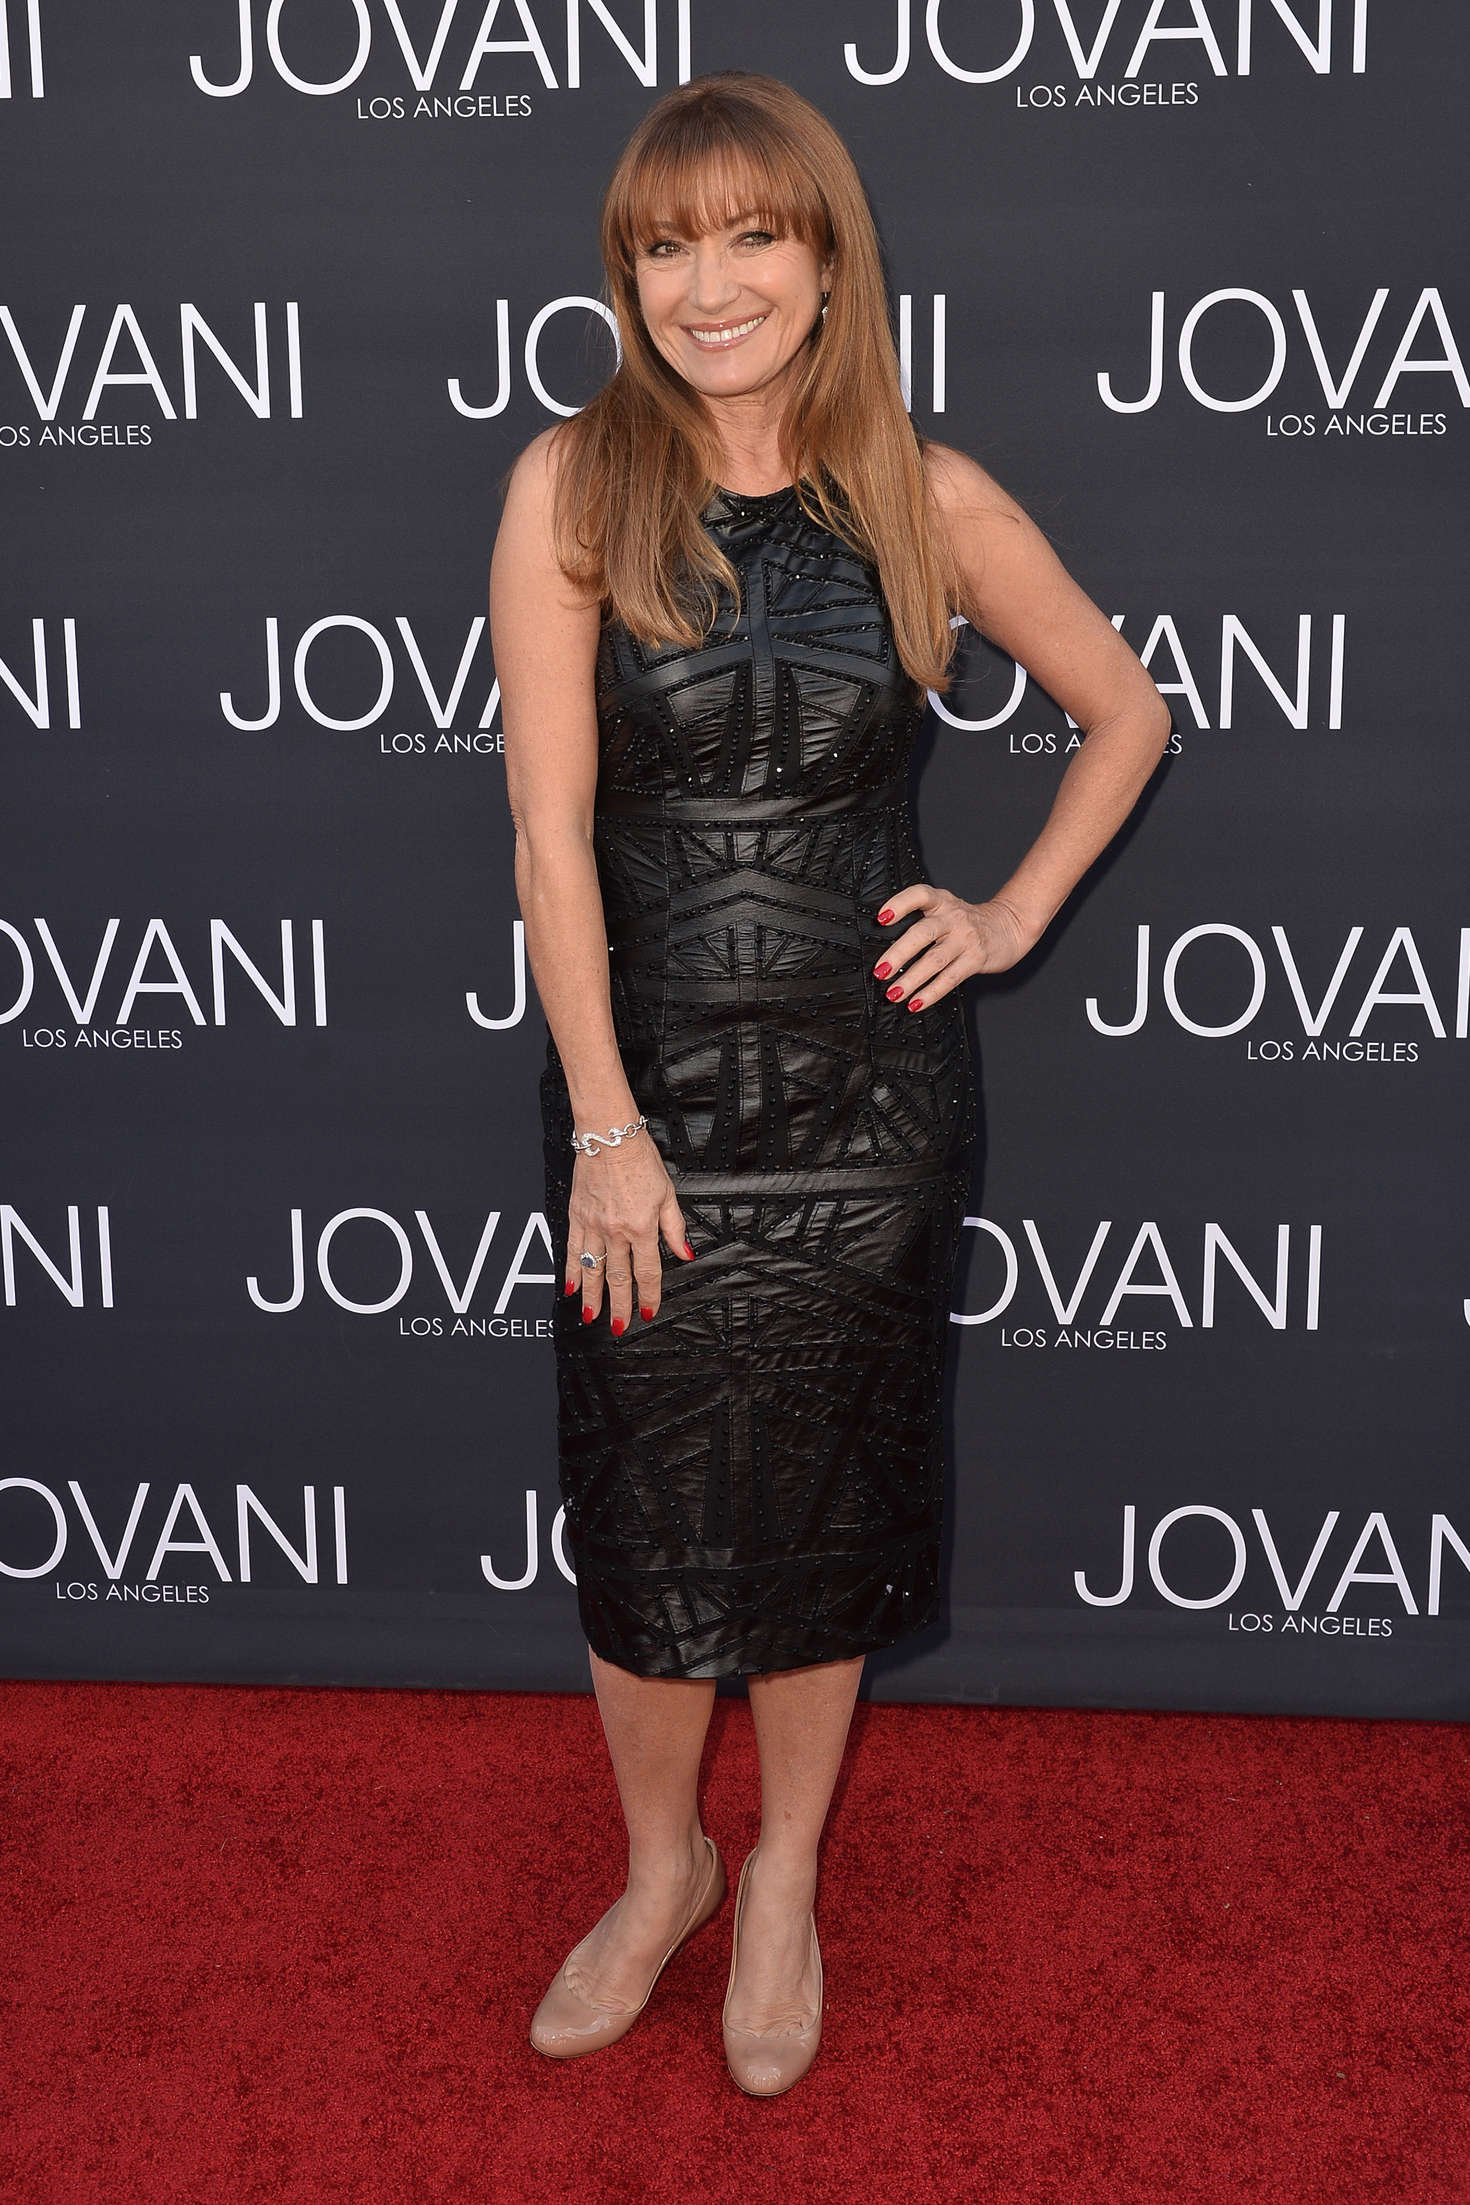 Jane Seymour 2016 : Jane Seymour: Jovani Los Angeles Store Opening Celebration -03